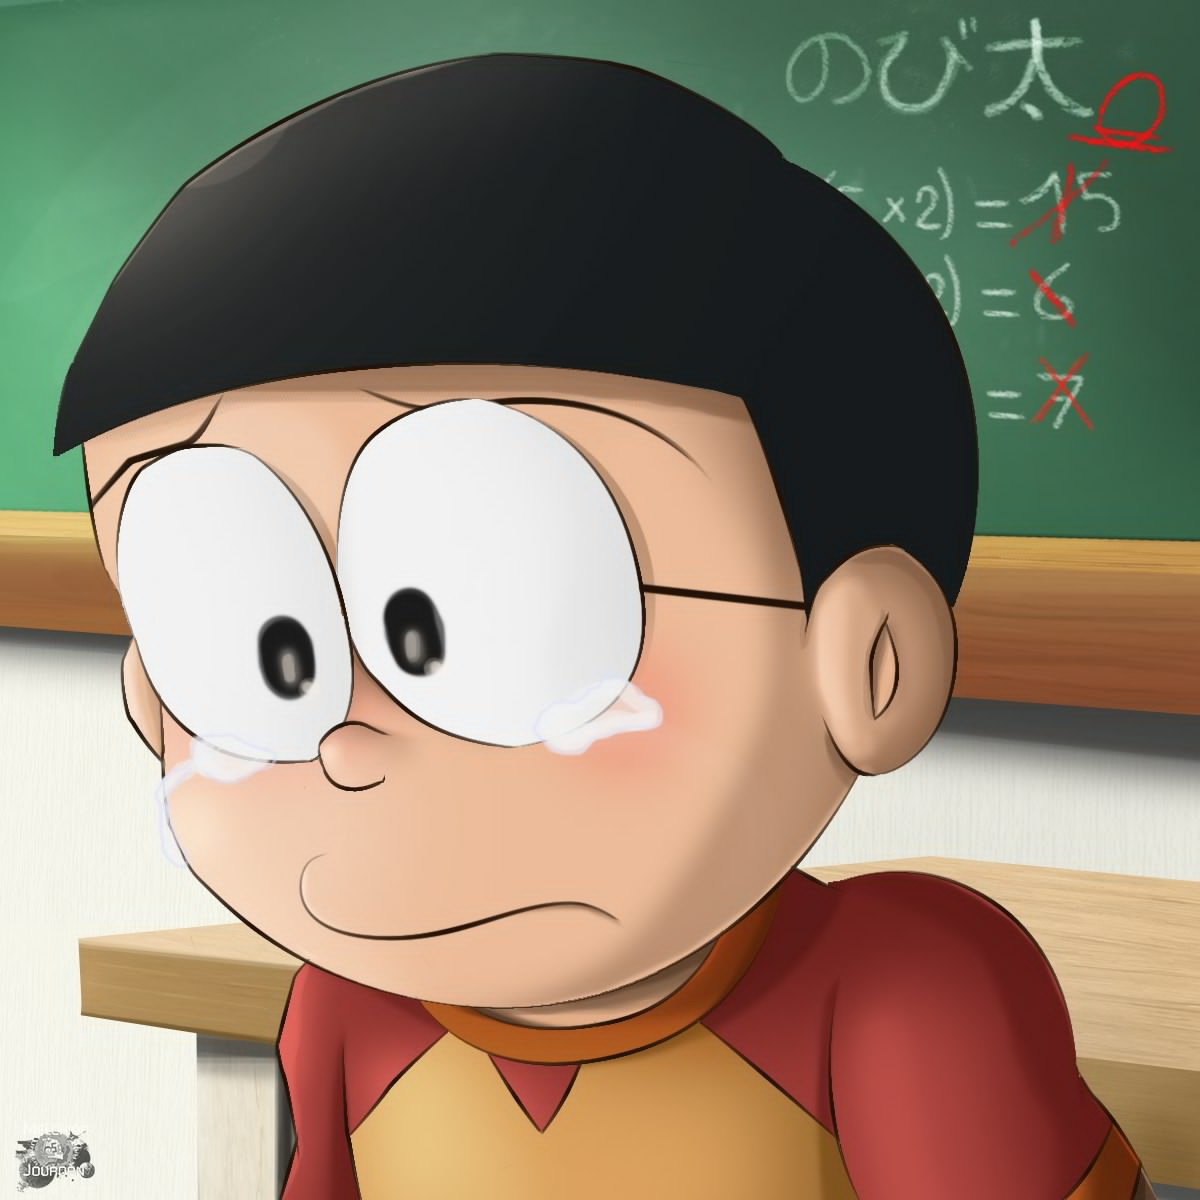 Sad Crying Girl Wallpaper Hd Doraemon Nobita And Friends Wallpaper 4k Images And Facts